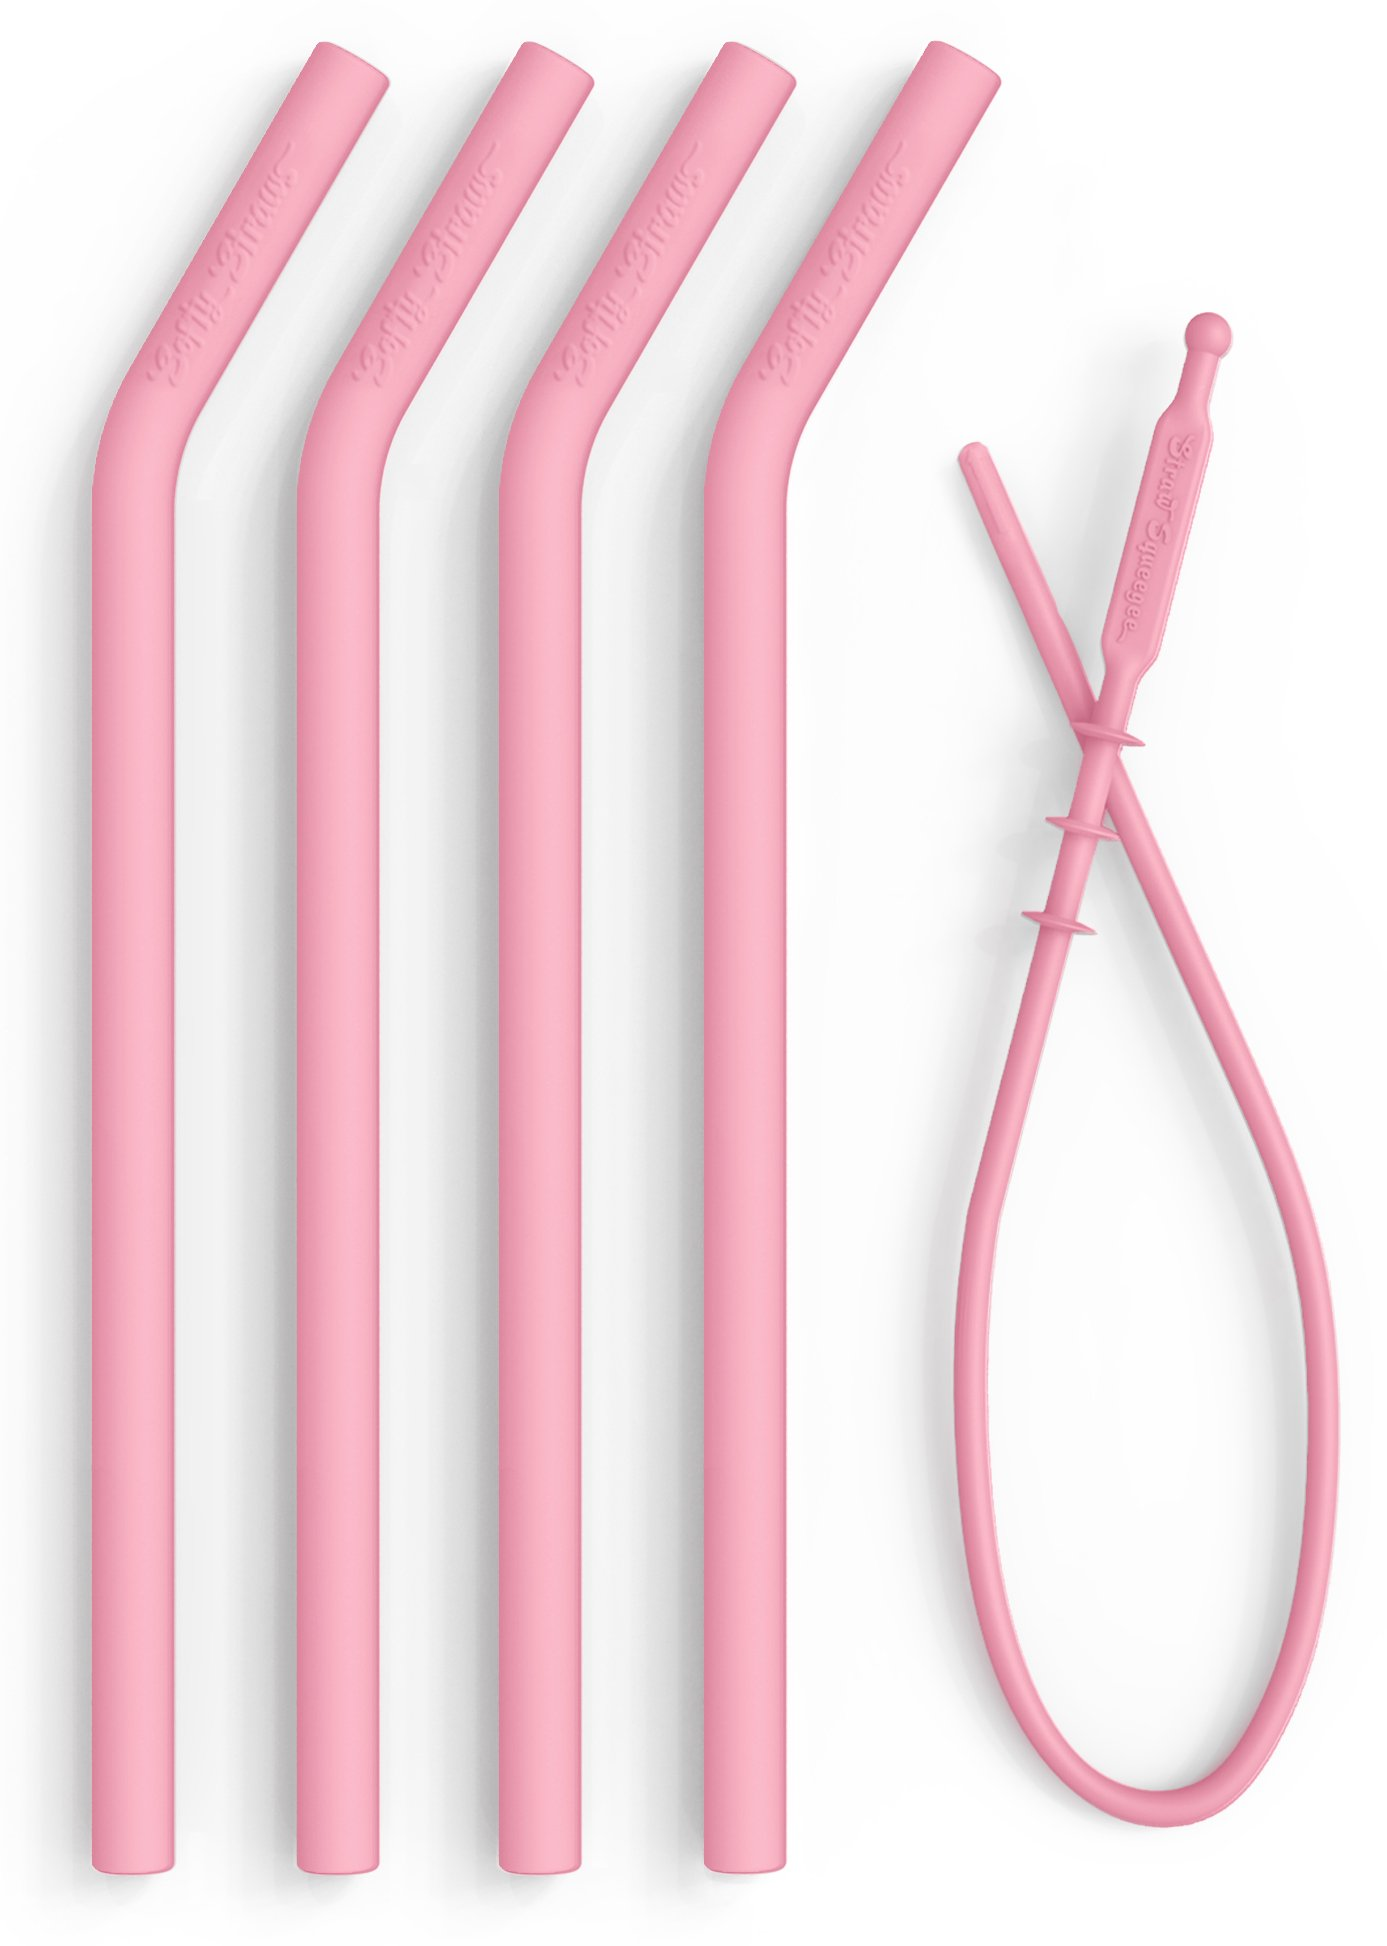 Reusable Silicone Straws for Smoothies - Collapsible FDA Pinch Tested BPA Free Dishwasher Safe - Long, Wide Smoothie Straw for 20 or 30 oz Tumblers - Chewy, Bendy, Flexible for Kids/Toddlers